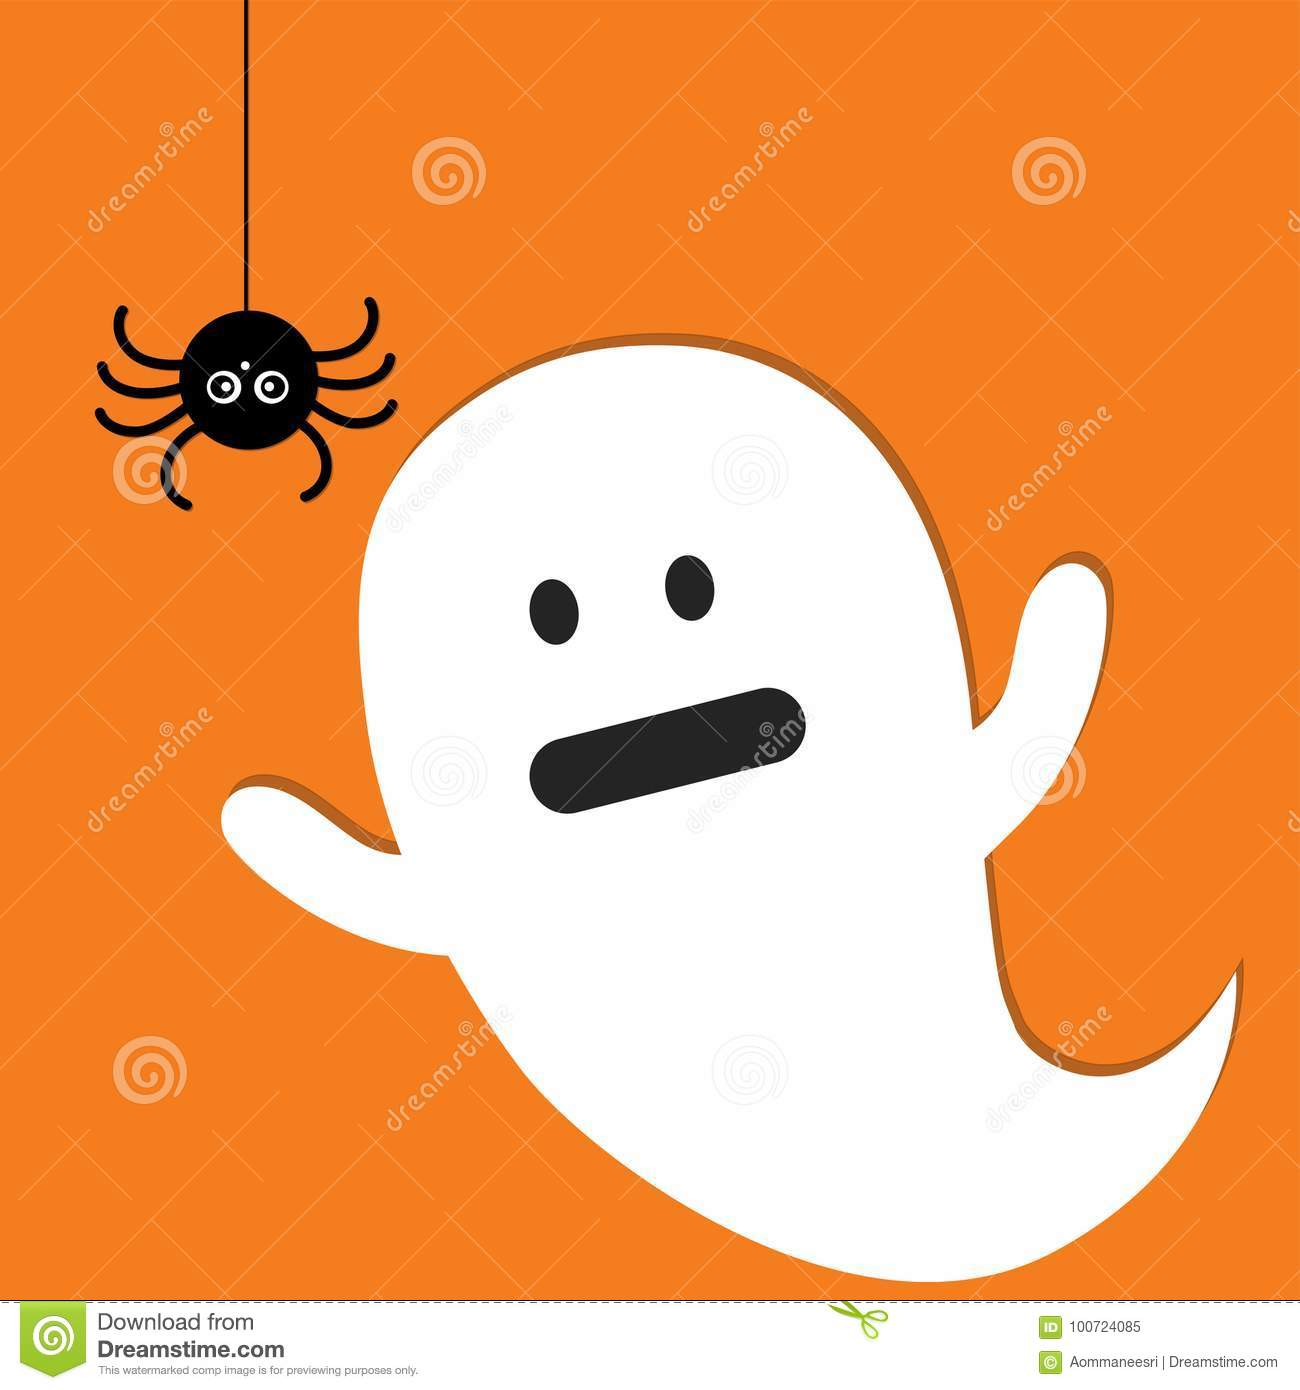 Halloween ghost icon stock vector. Illustration of holiday ...